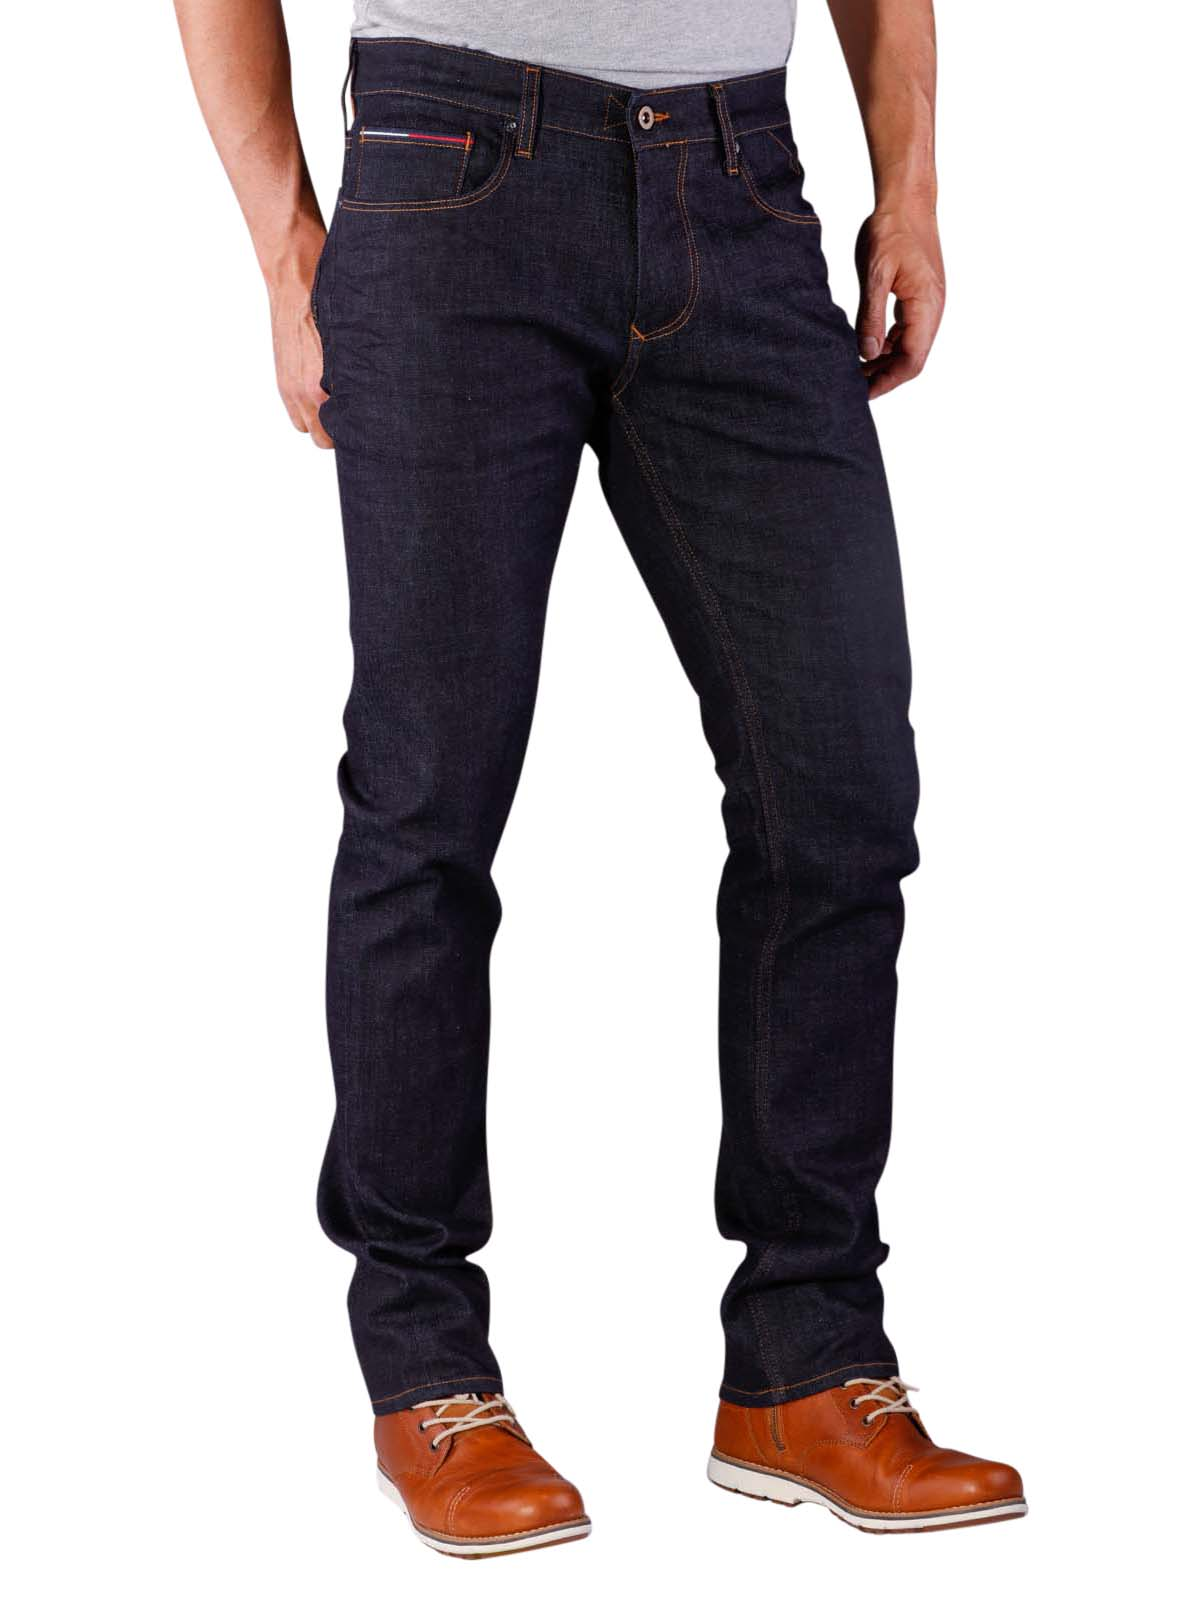 89ee20750 McJeans.ch - Fast Delivery | Tommy Jeans Ryan Original Straight rinse  comfort | Free Shipping - Free Returns